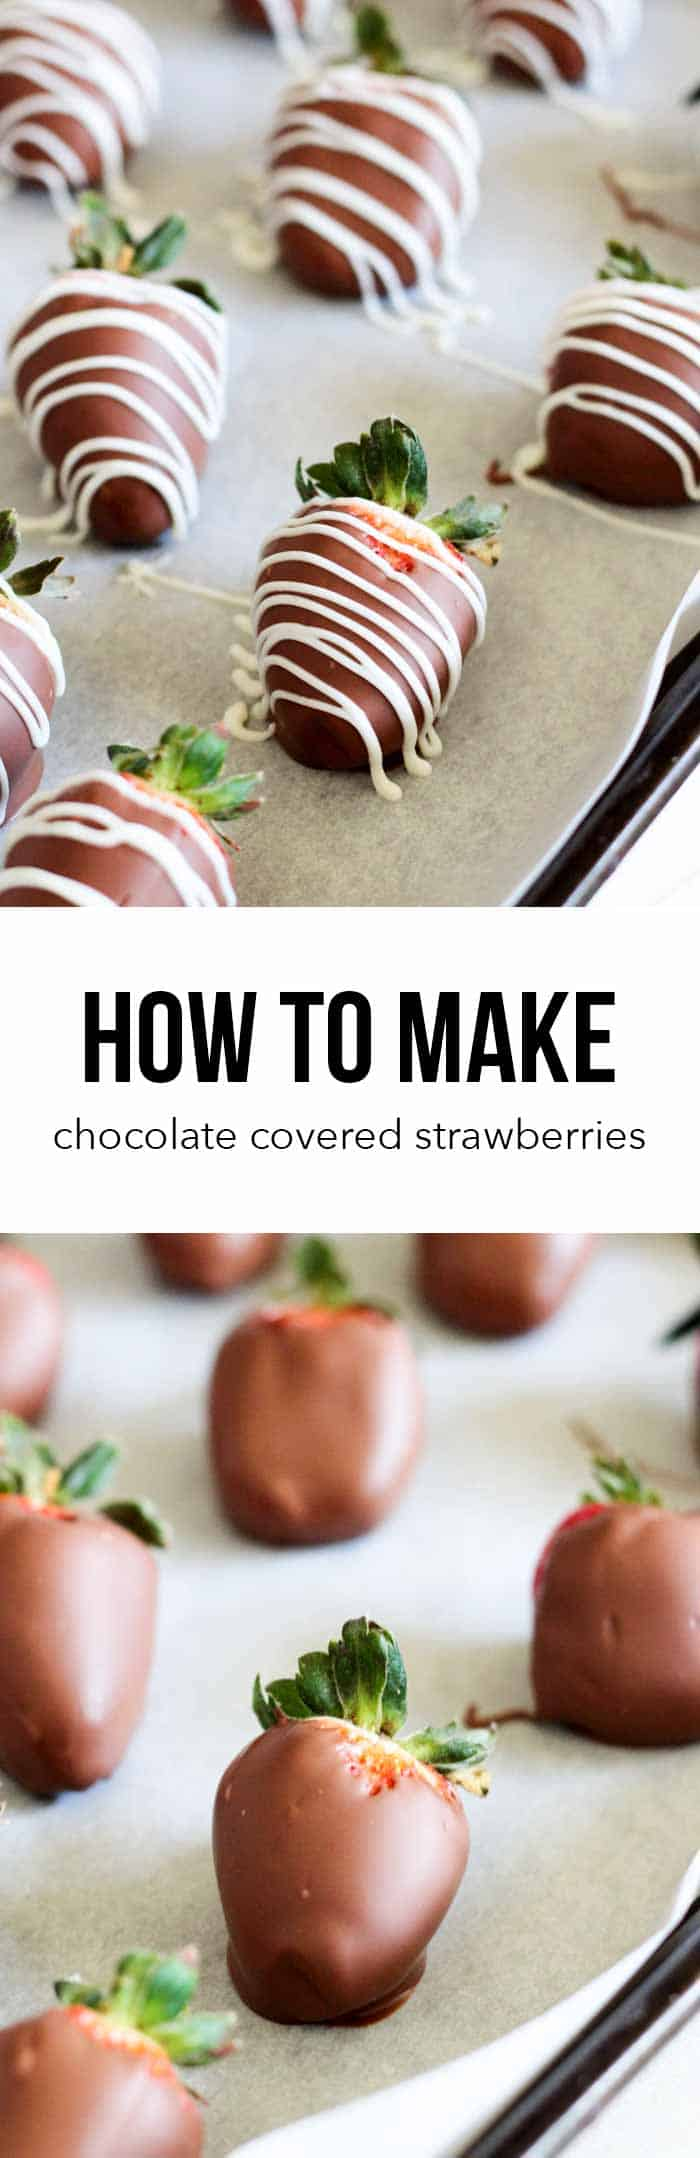 Easy Chocolate Covered Strawberries I Heart Naptime